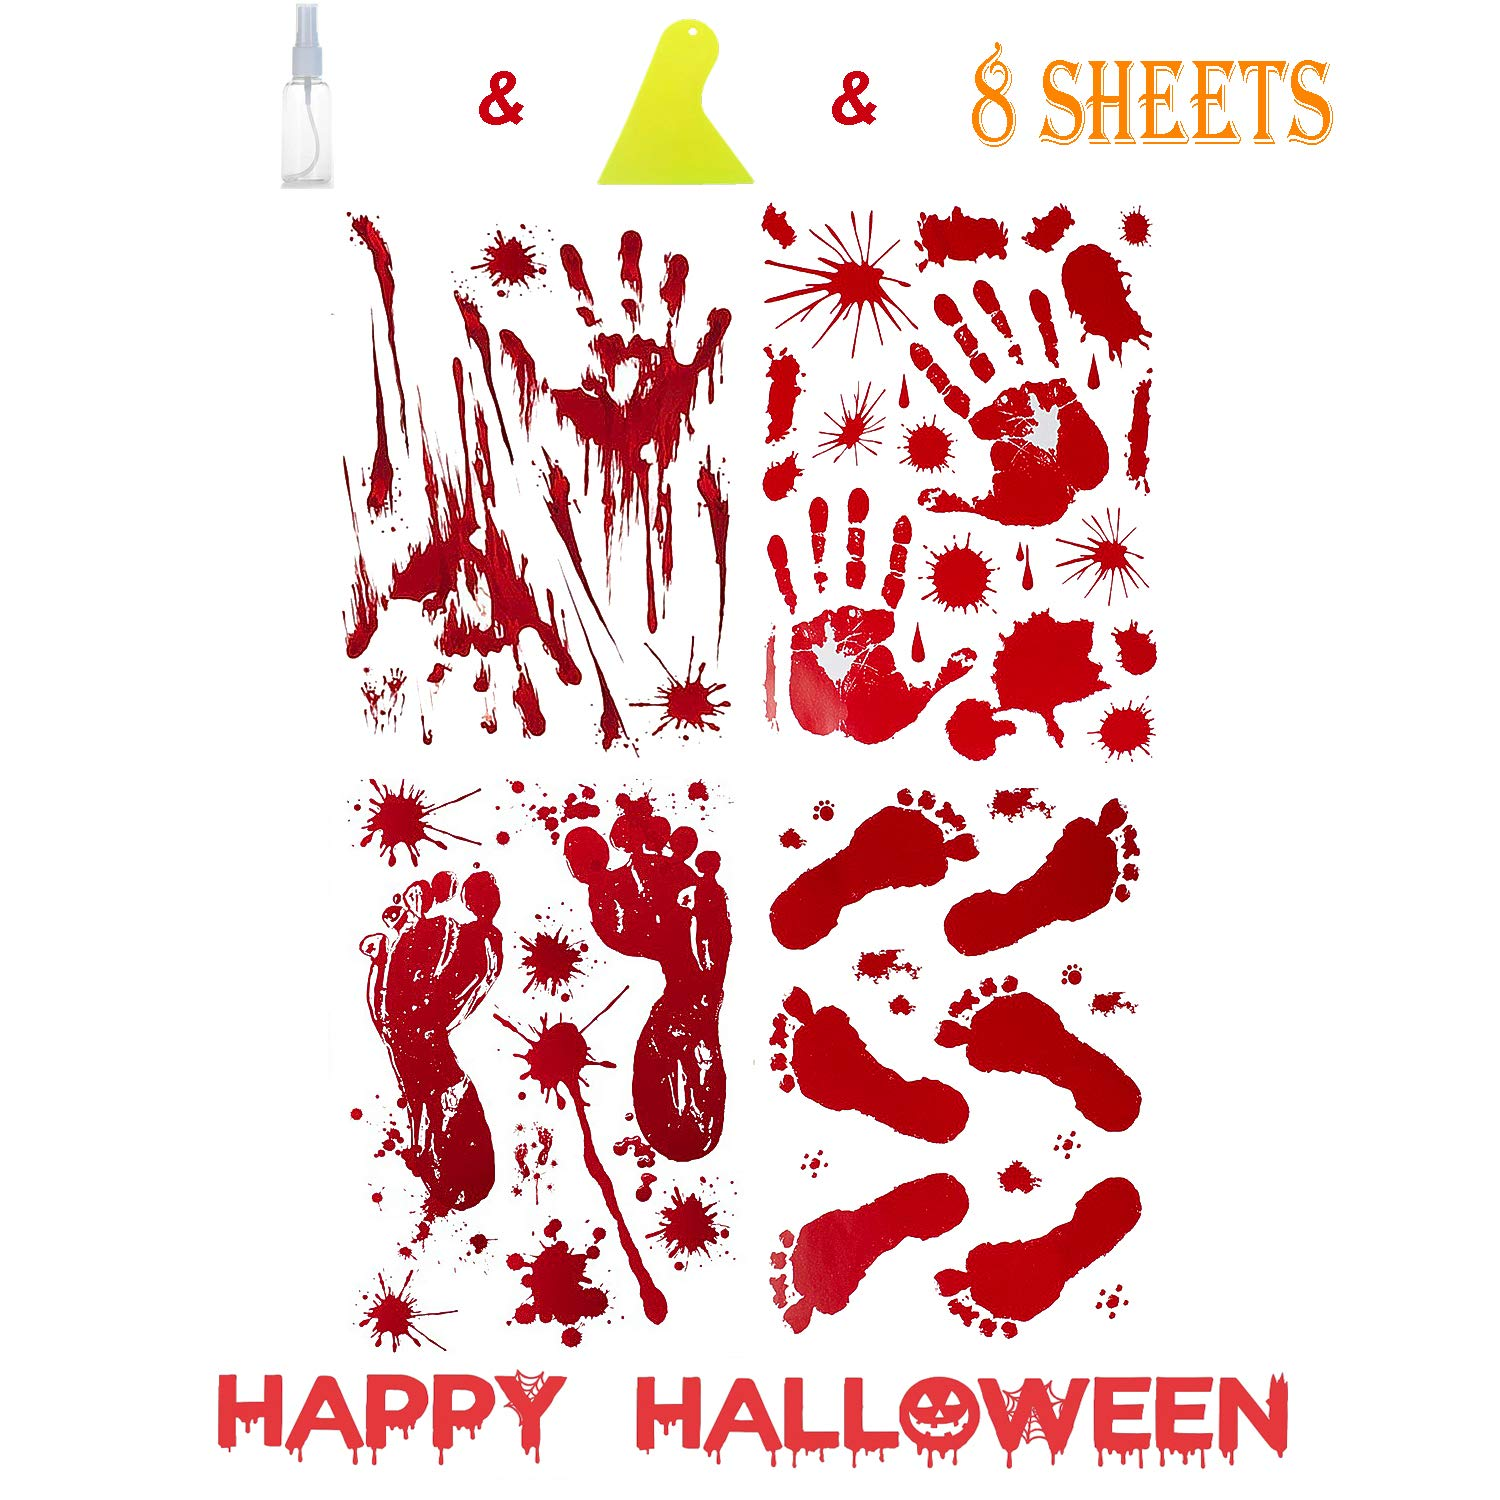 JBTAIN Halloween Decoration Bloody Handprint &Footprint Clings Decals, Horror Stickers with One Plastic Scraper & Plastic Bottle(8 Sheets)